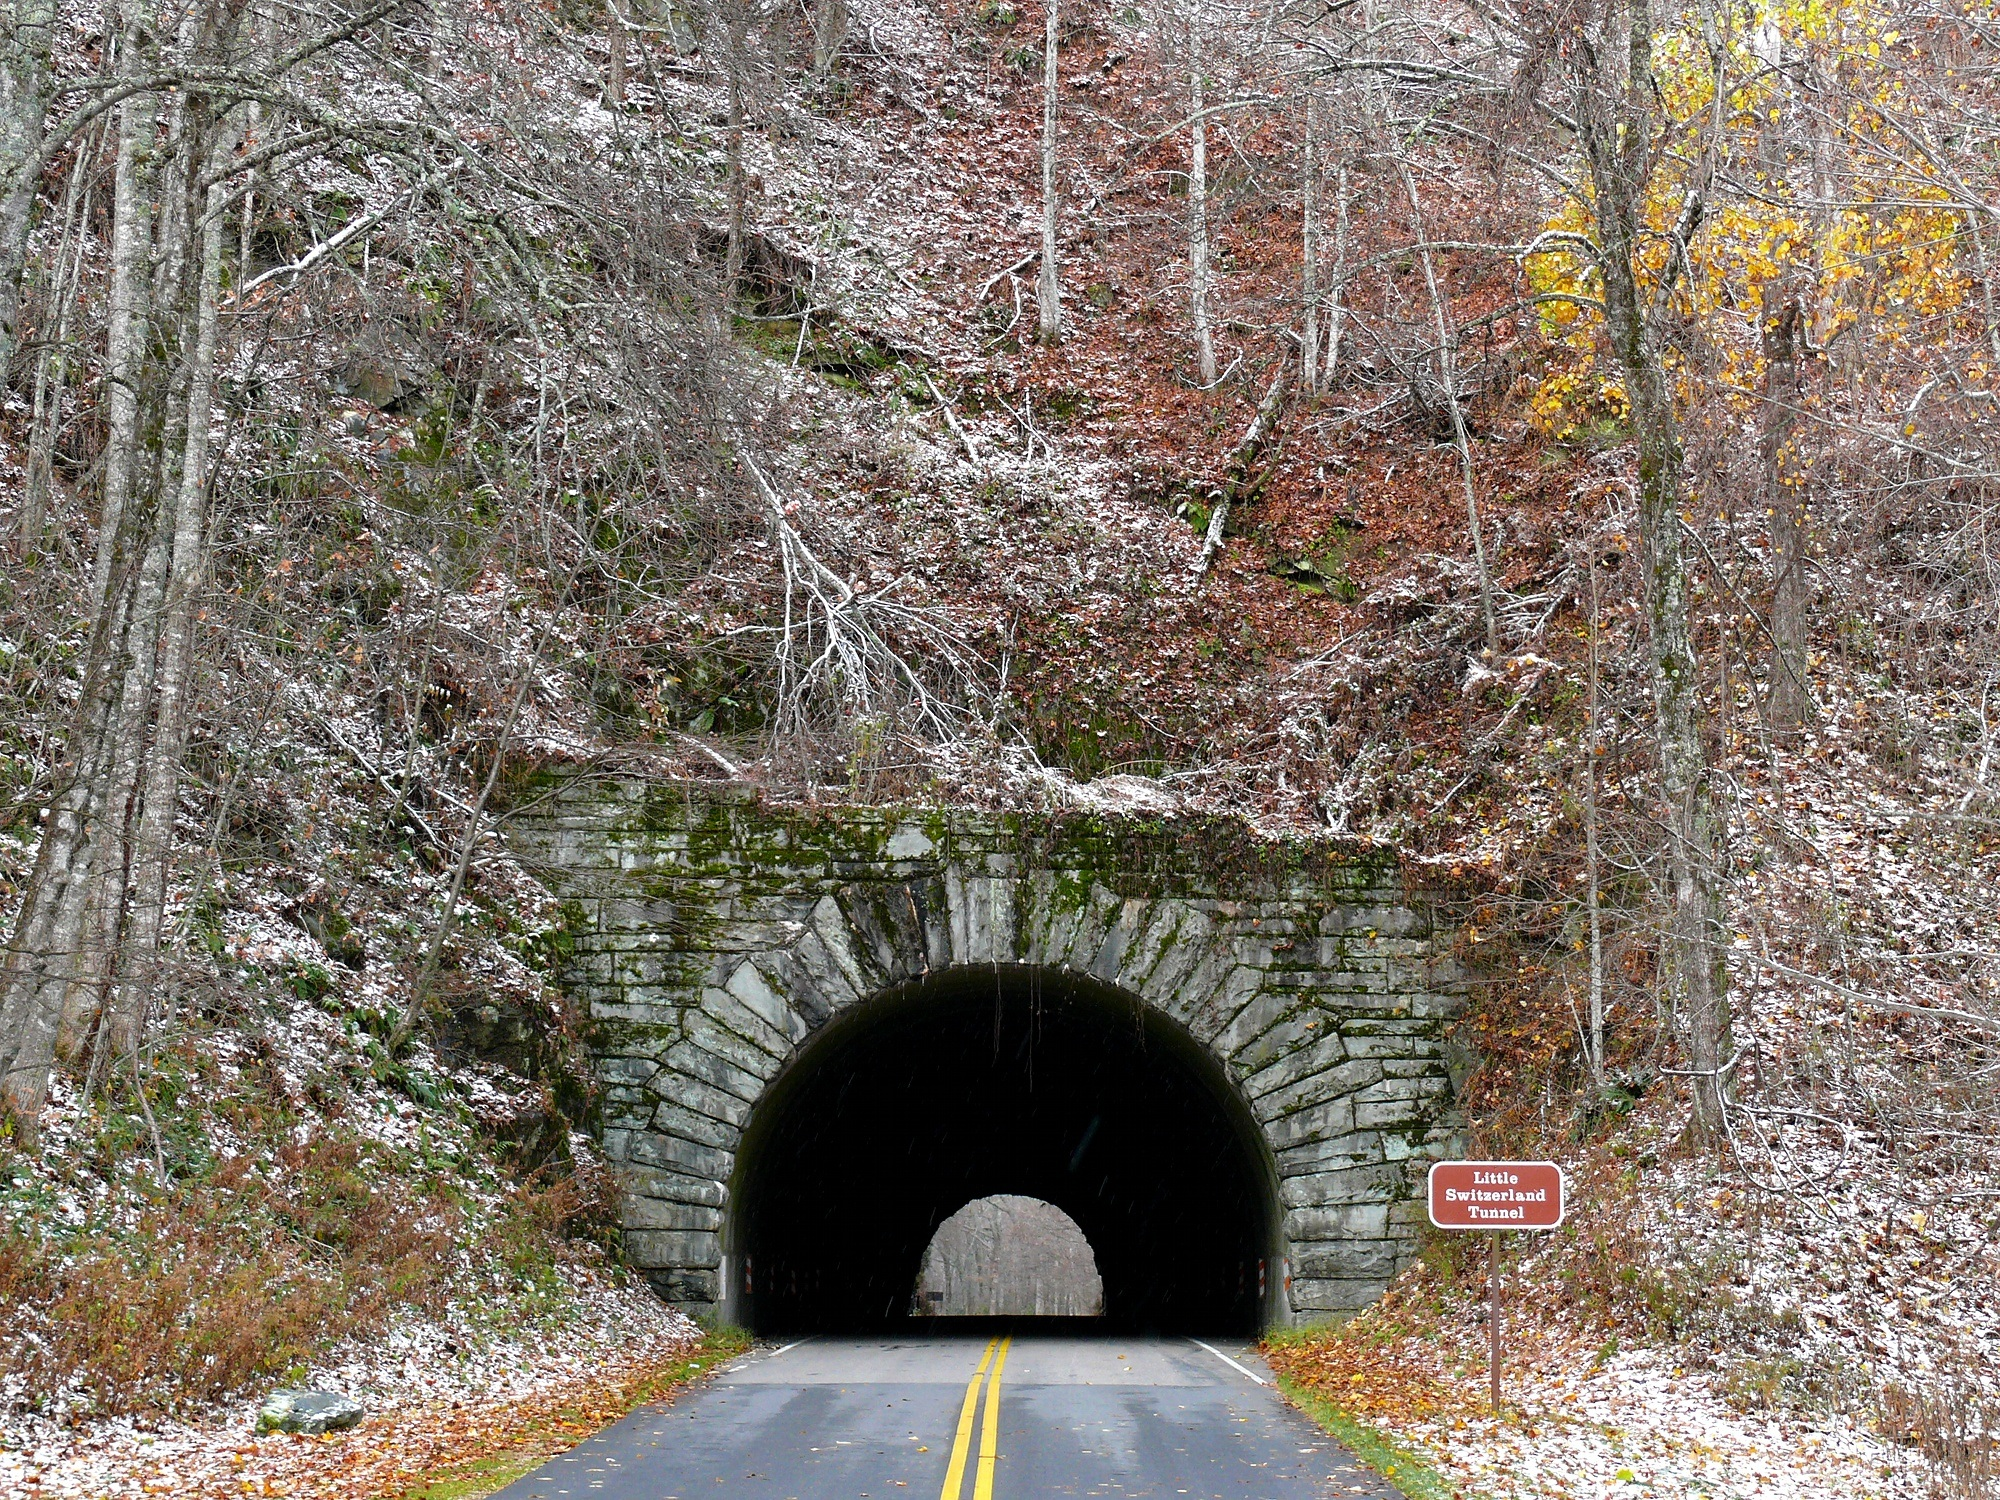 Little Switzerland Tunnel, Nature, Path, Road, Route, HQ Photo